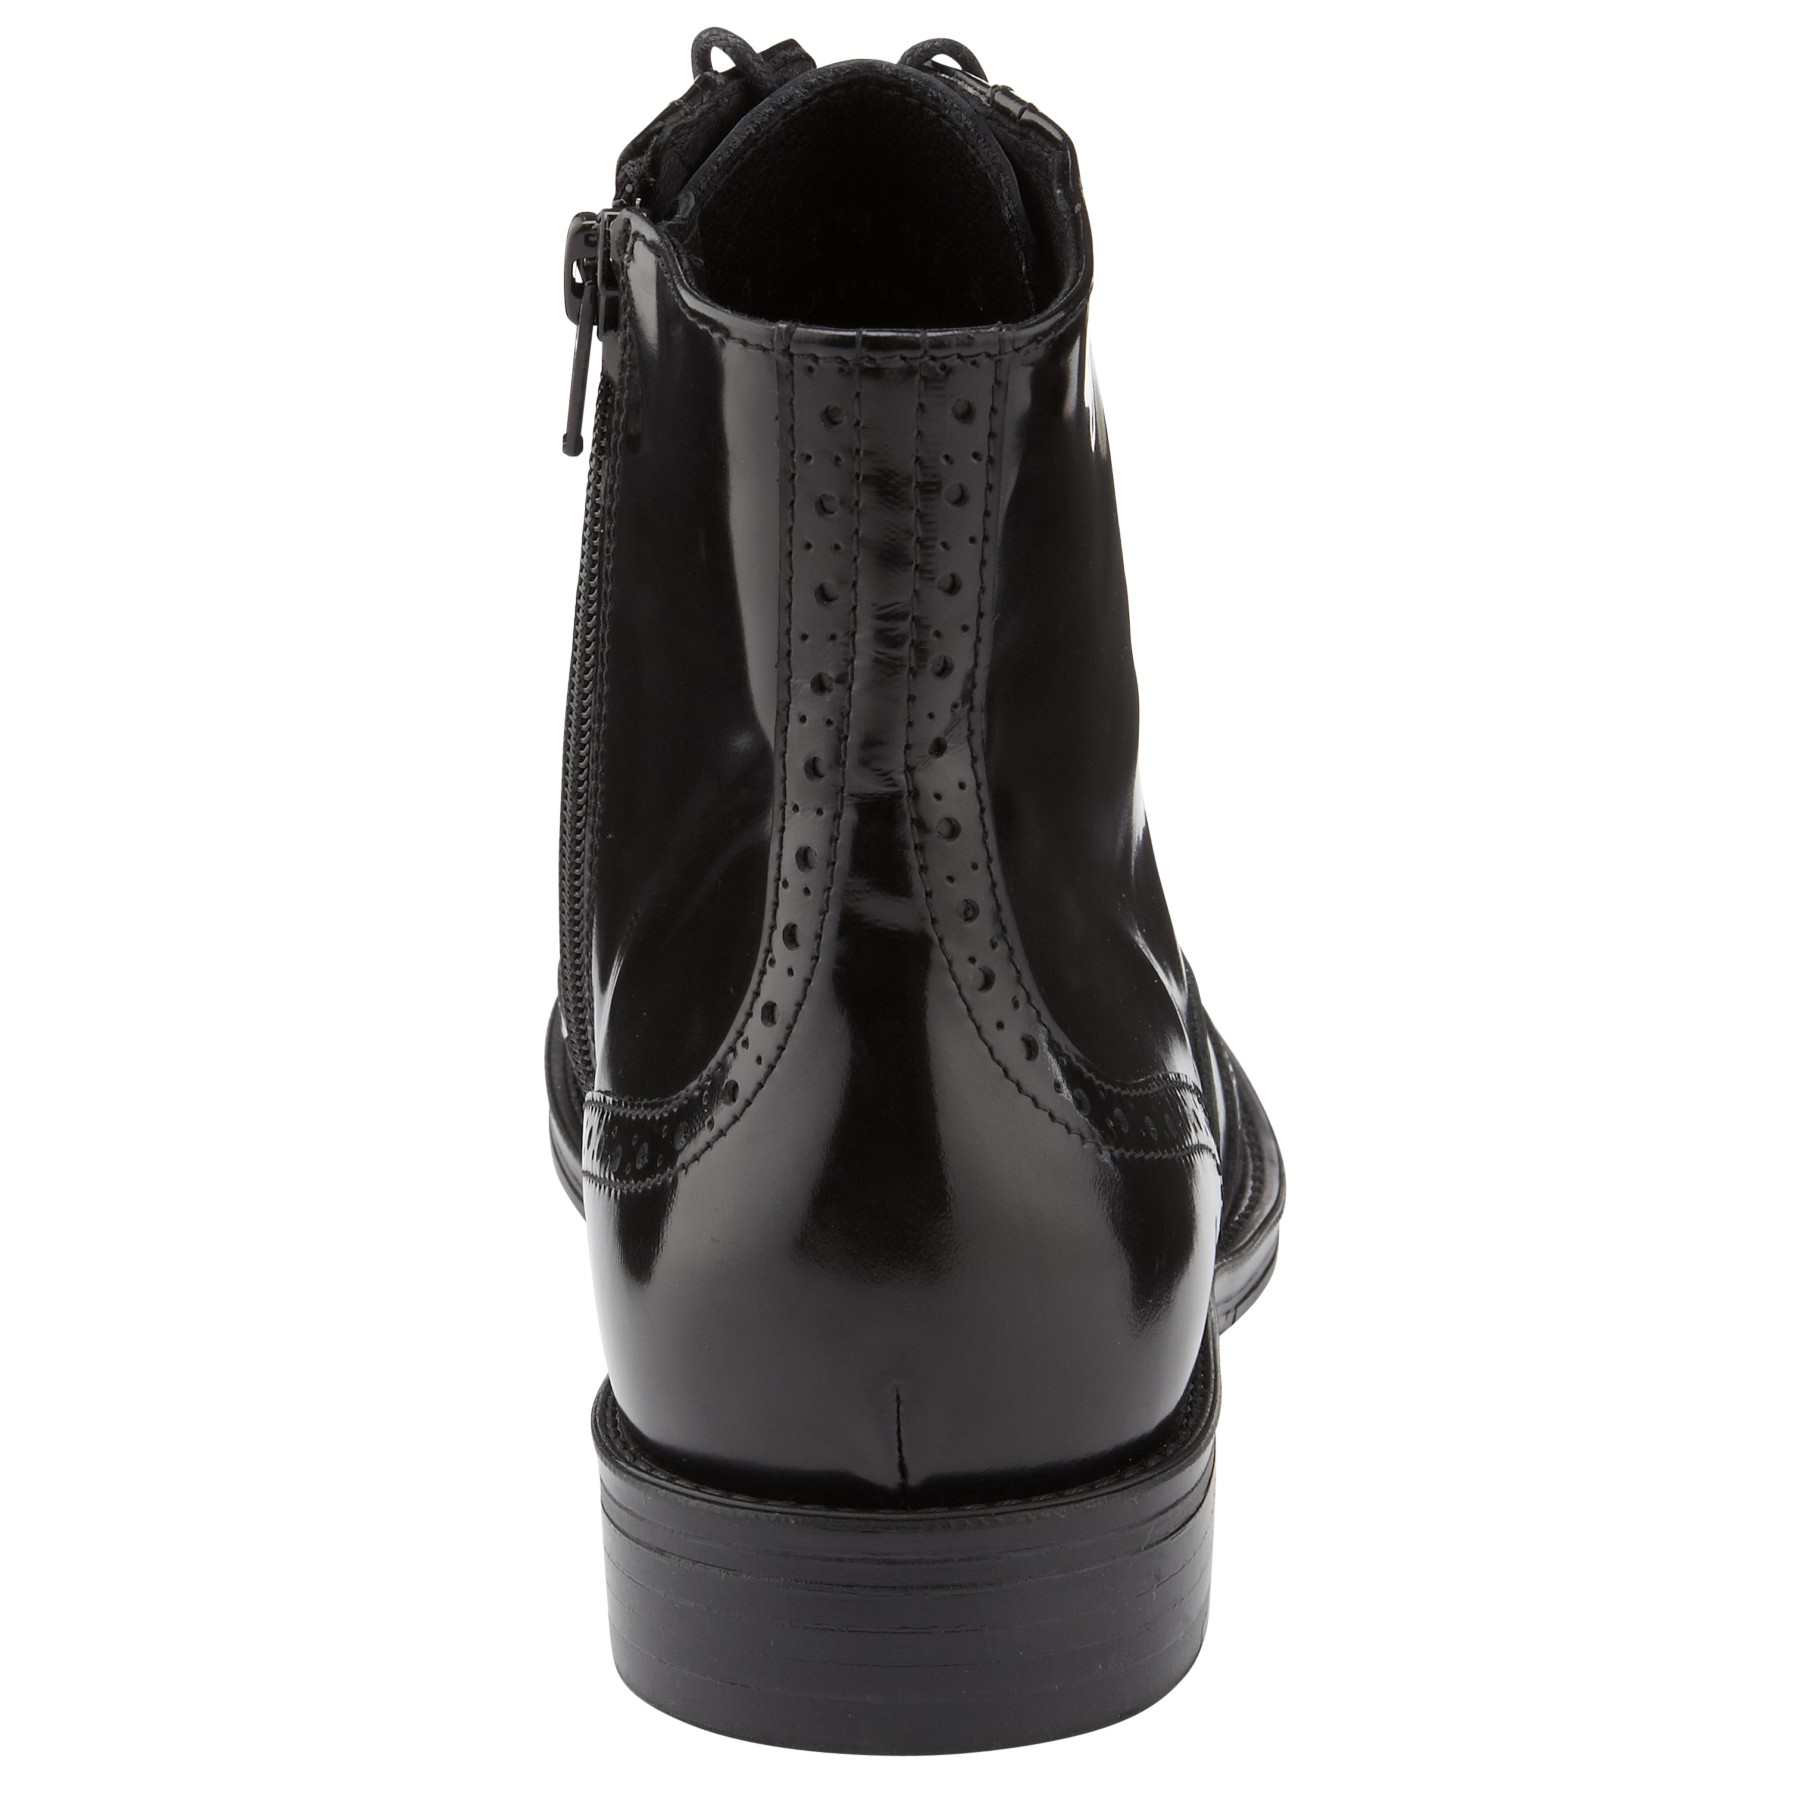 Somerset by Alice Temperley Leather Portbury Ankle Boots in Black